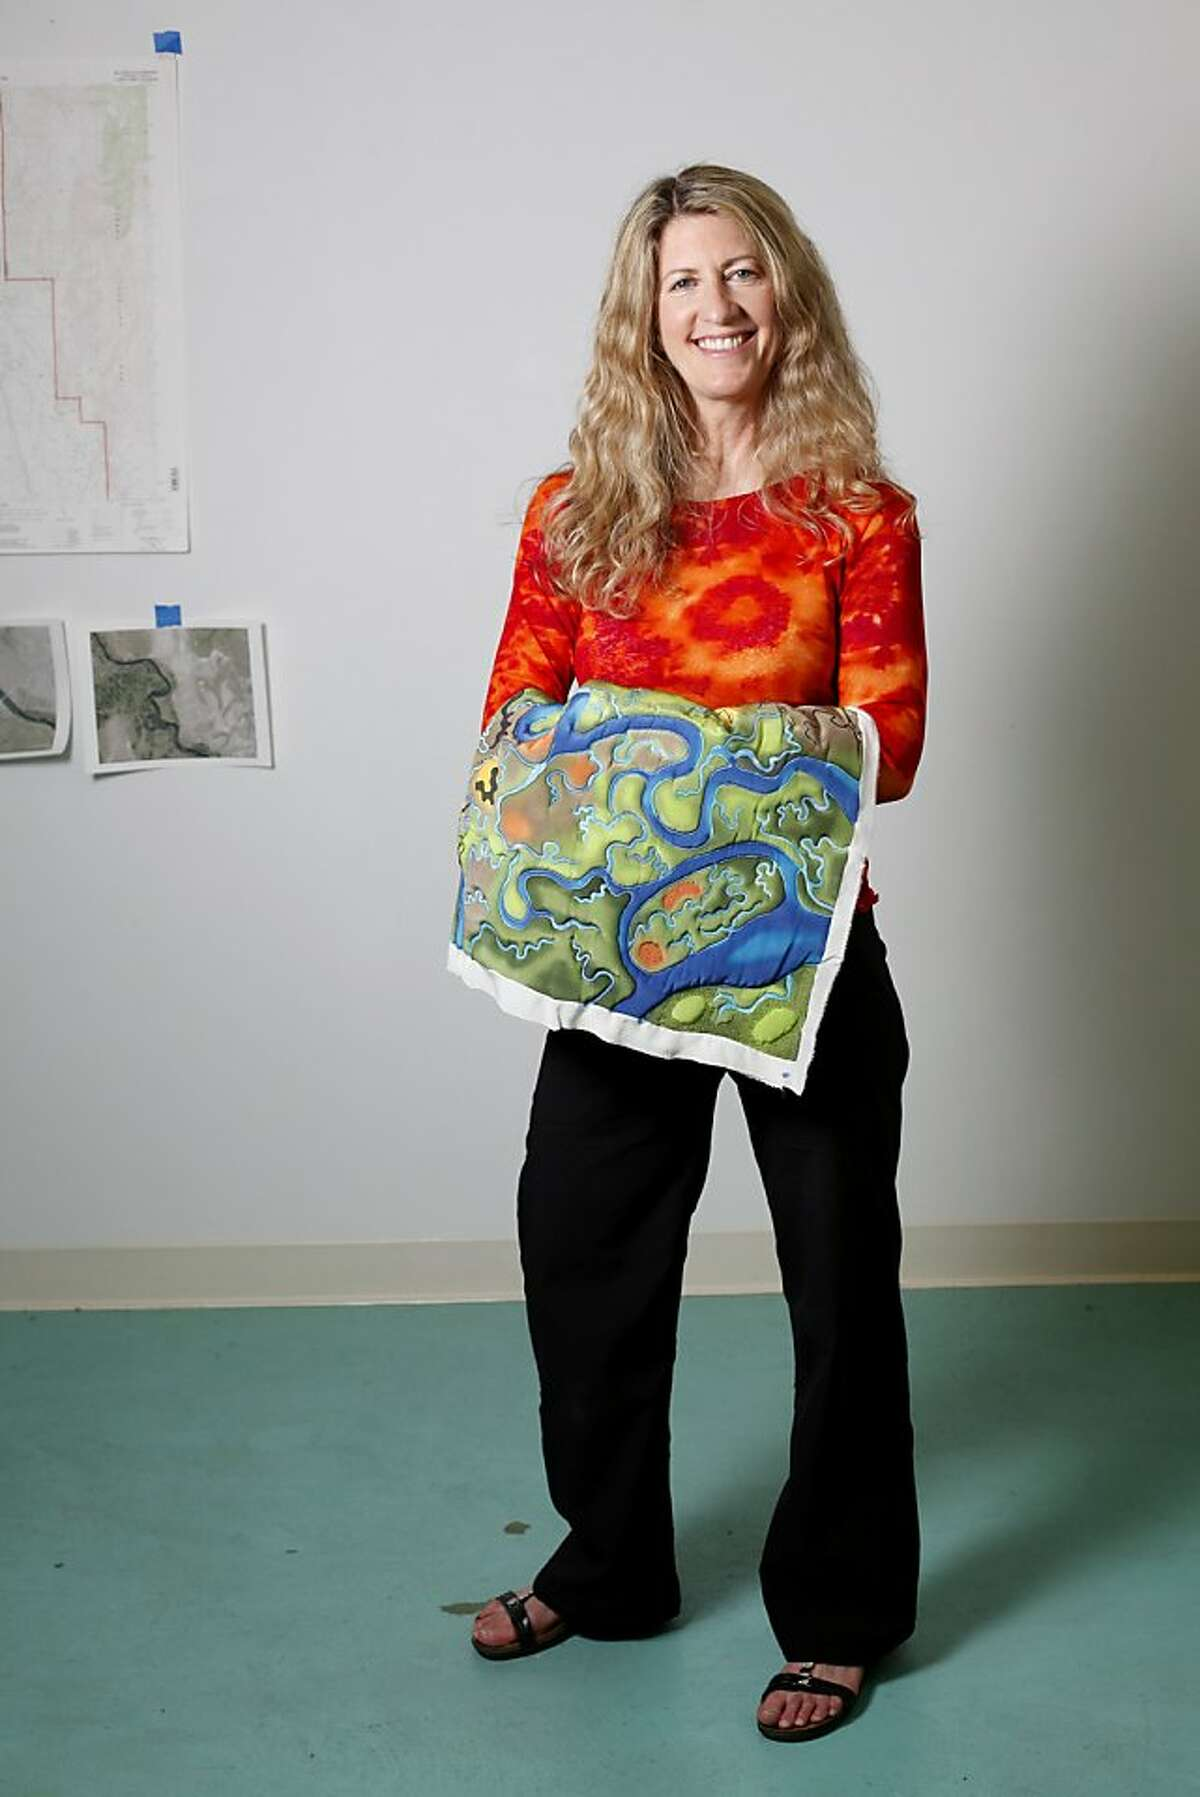 Linda Gass is an artist who creates stitched paintings on silk. She is photographed in her studio in Palo Alto, Calif., Tuesday, November 1, 2011. (**note - that is how she refers to her work, not as quilts**)(to be cut out)